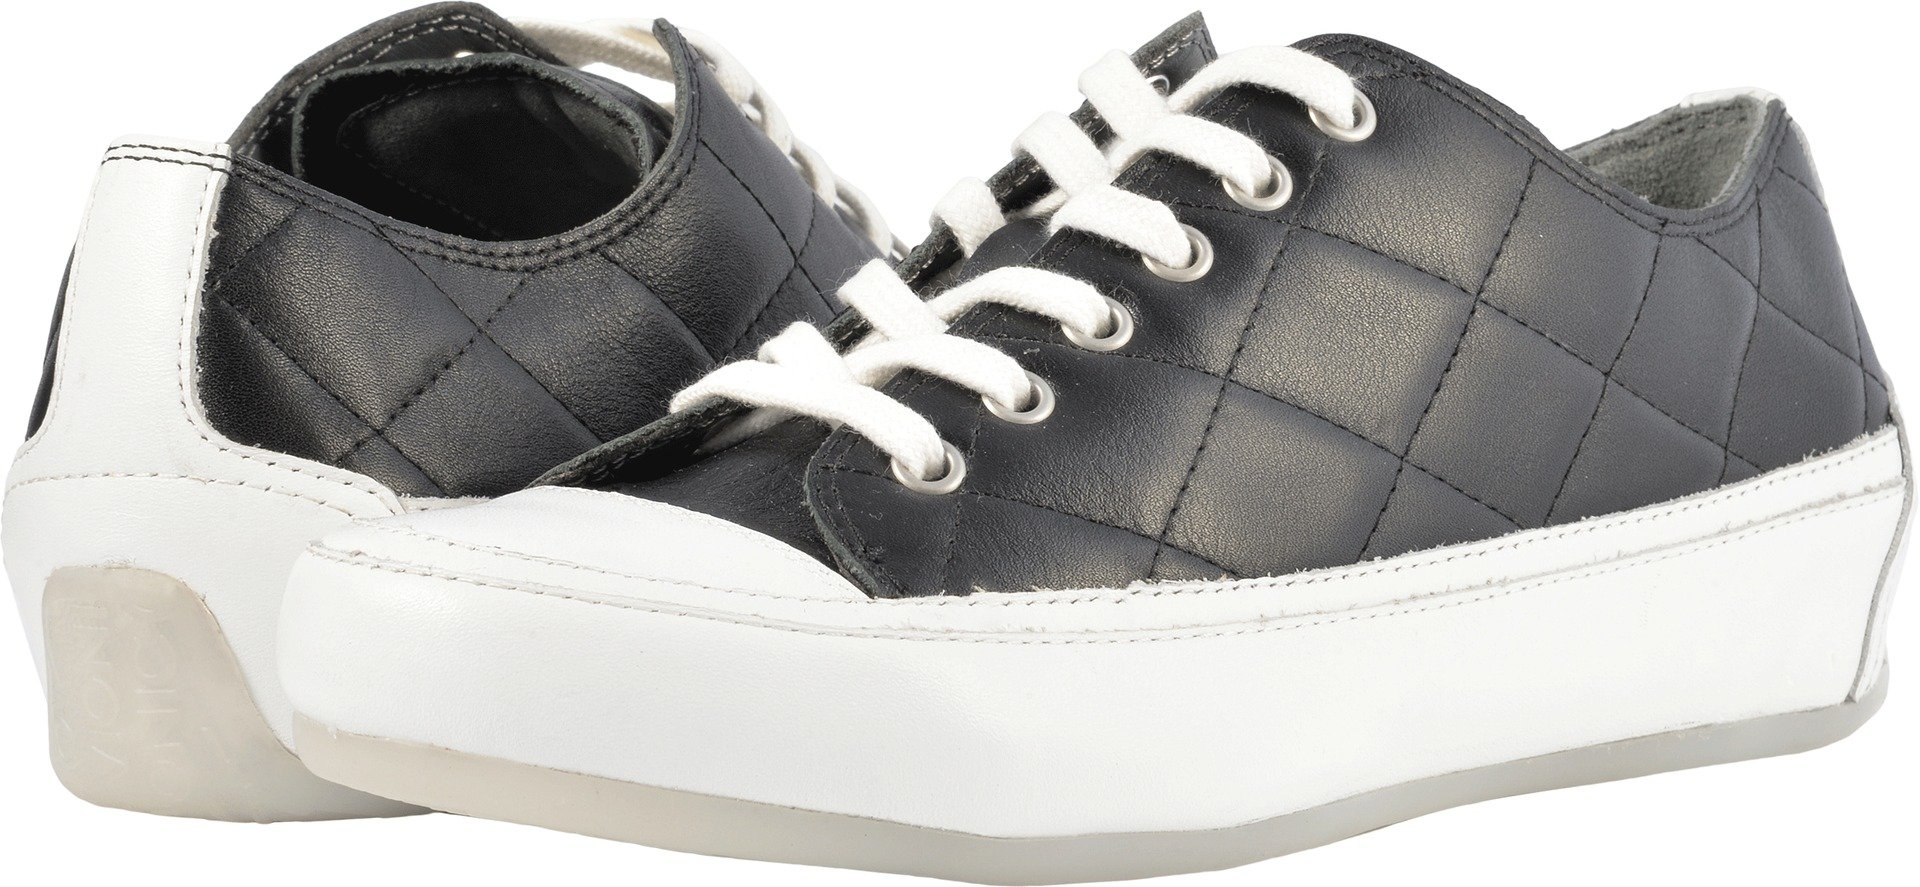 Vionic Womens Delight Edie Lace Up Sneaker, Black, Size 8